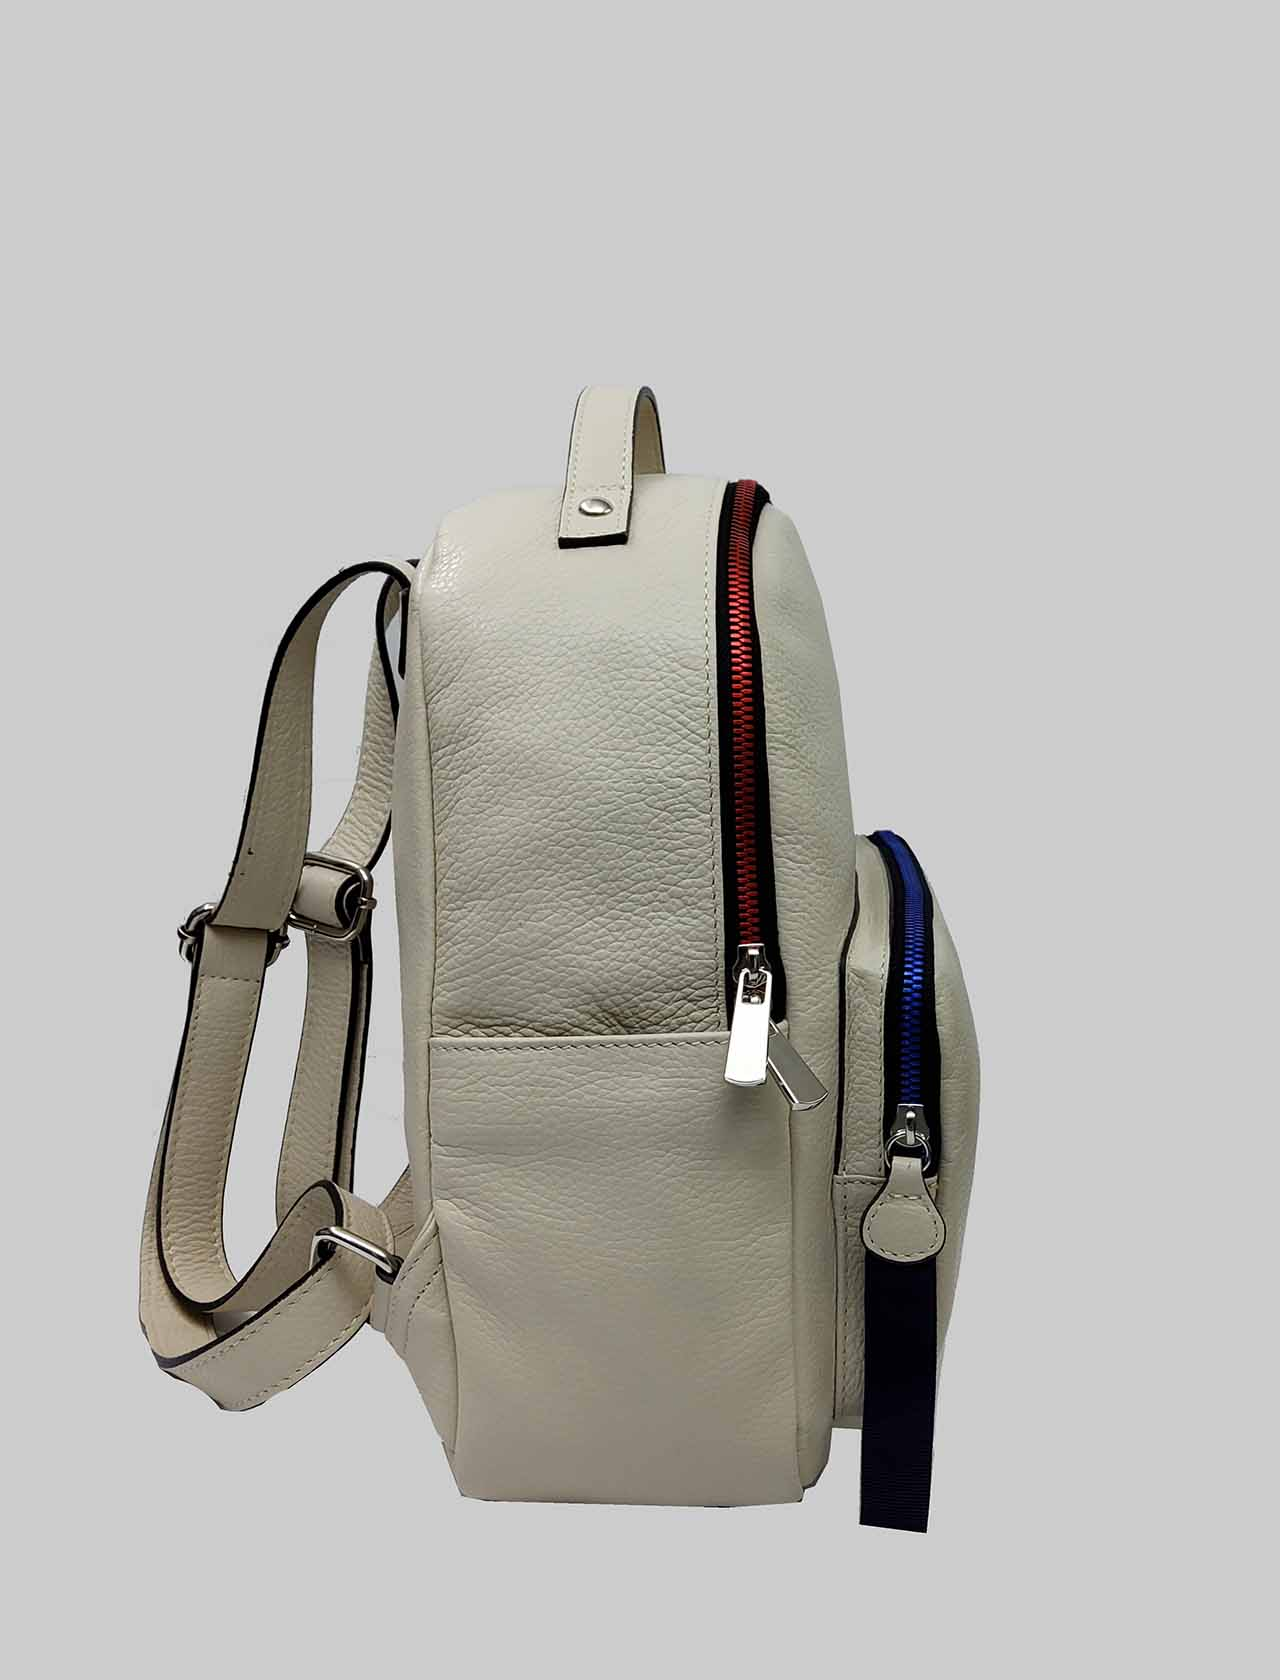 Woman Backpacks in White Leather with Multicolor Closure Zip Spatarella | Bags and backpacks | PE0215100